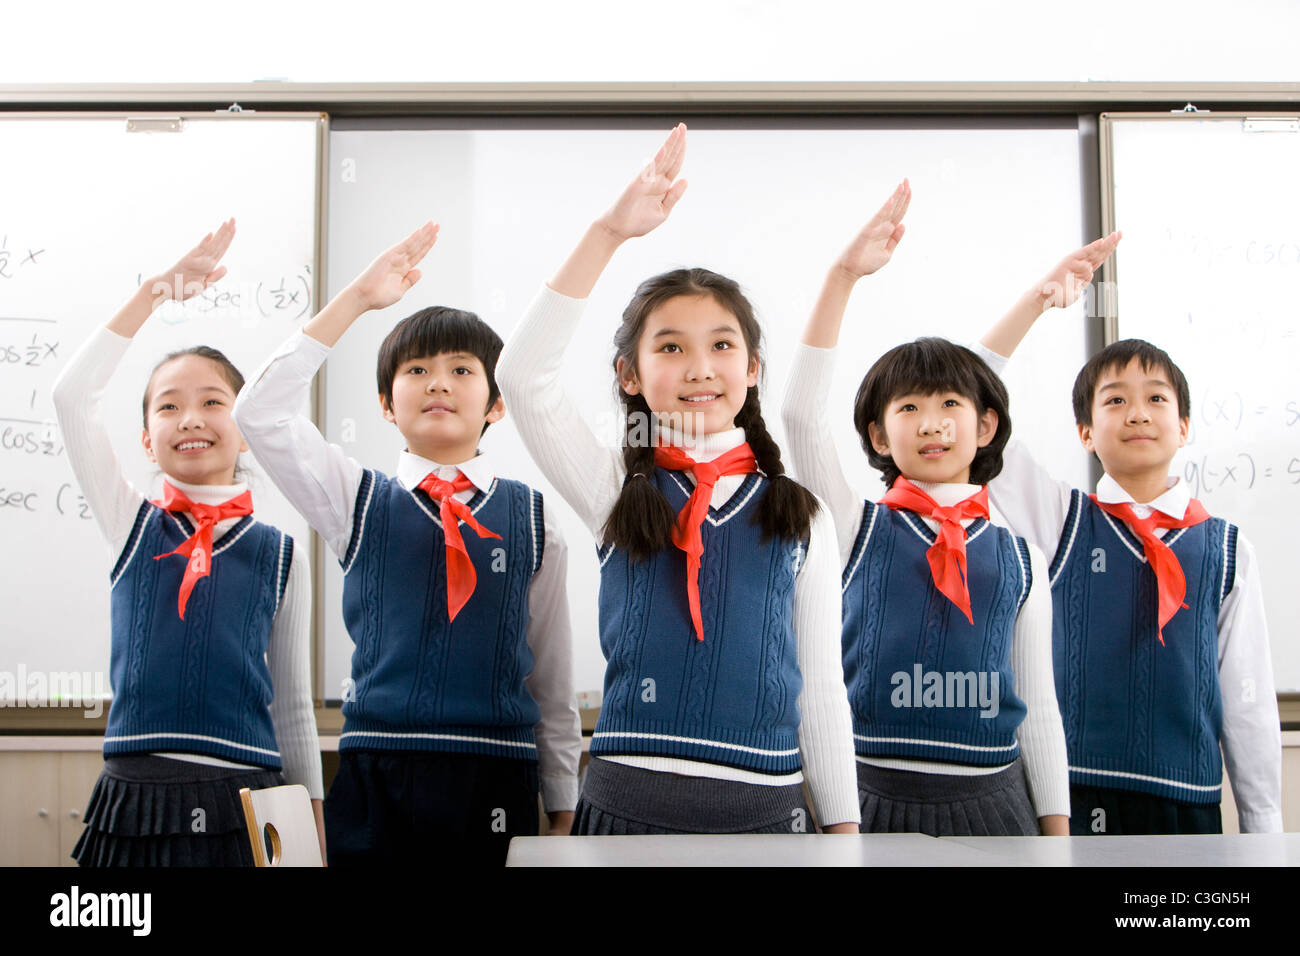 Young students saluting in a row at school - Stock Image